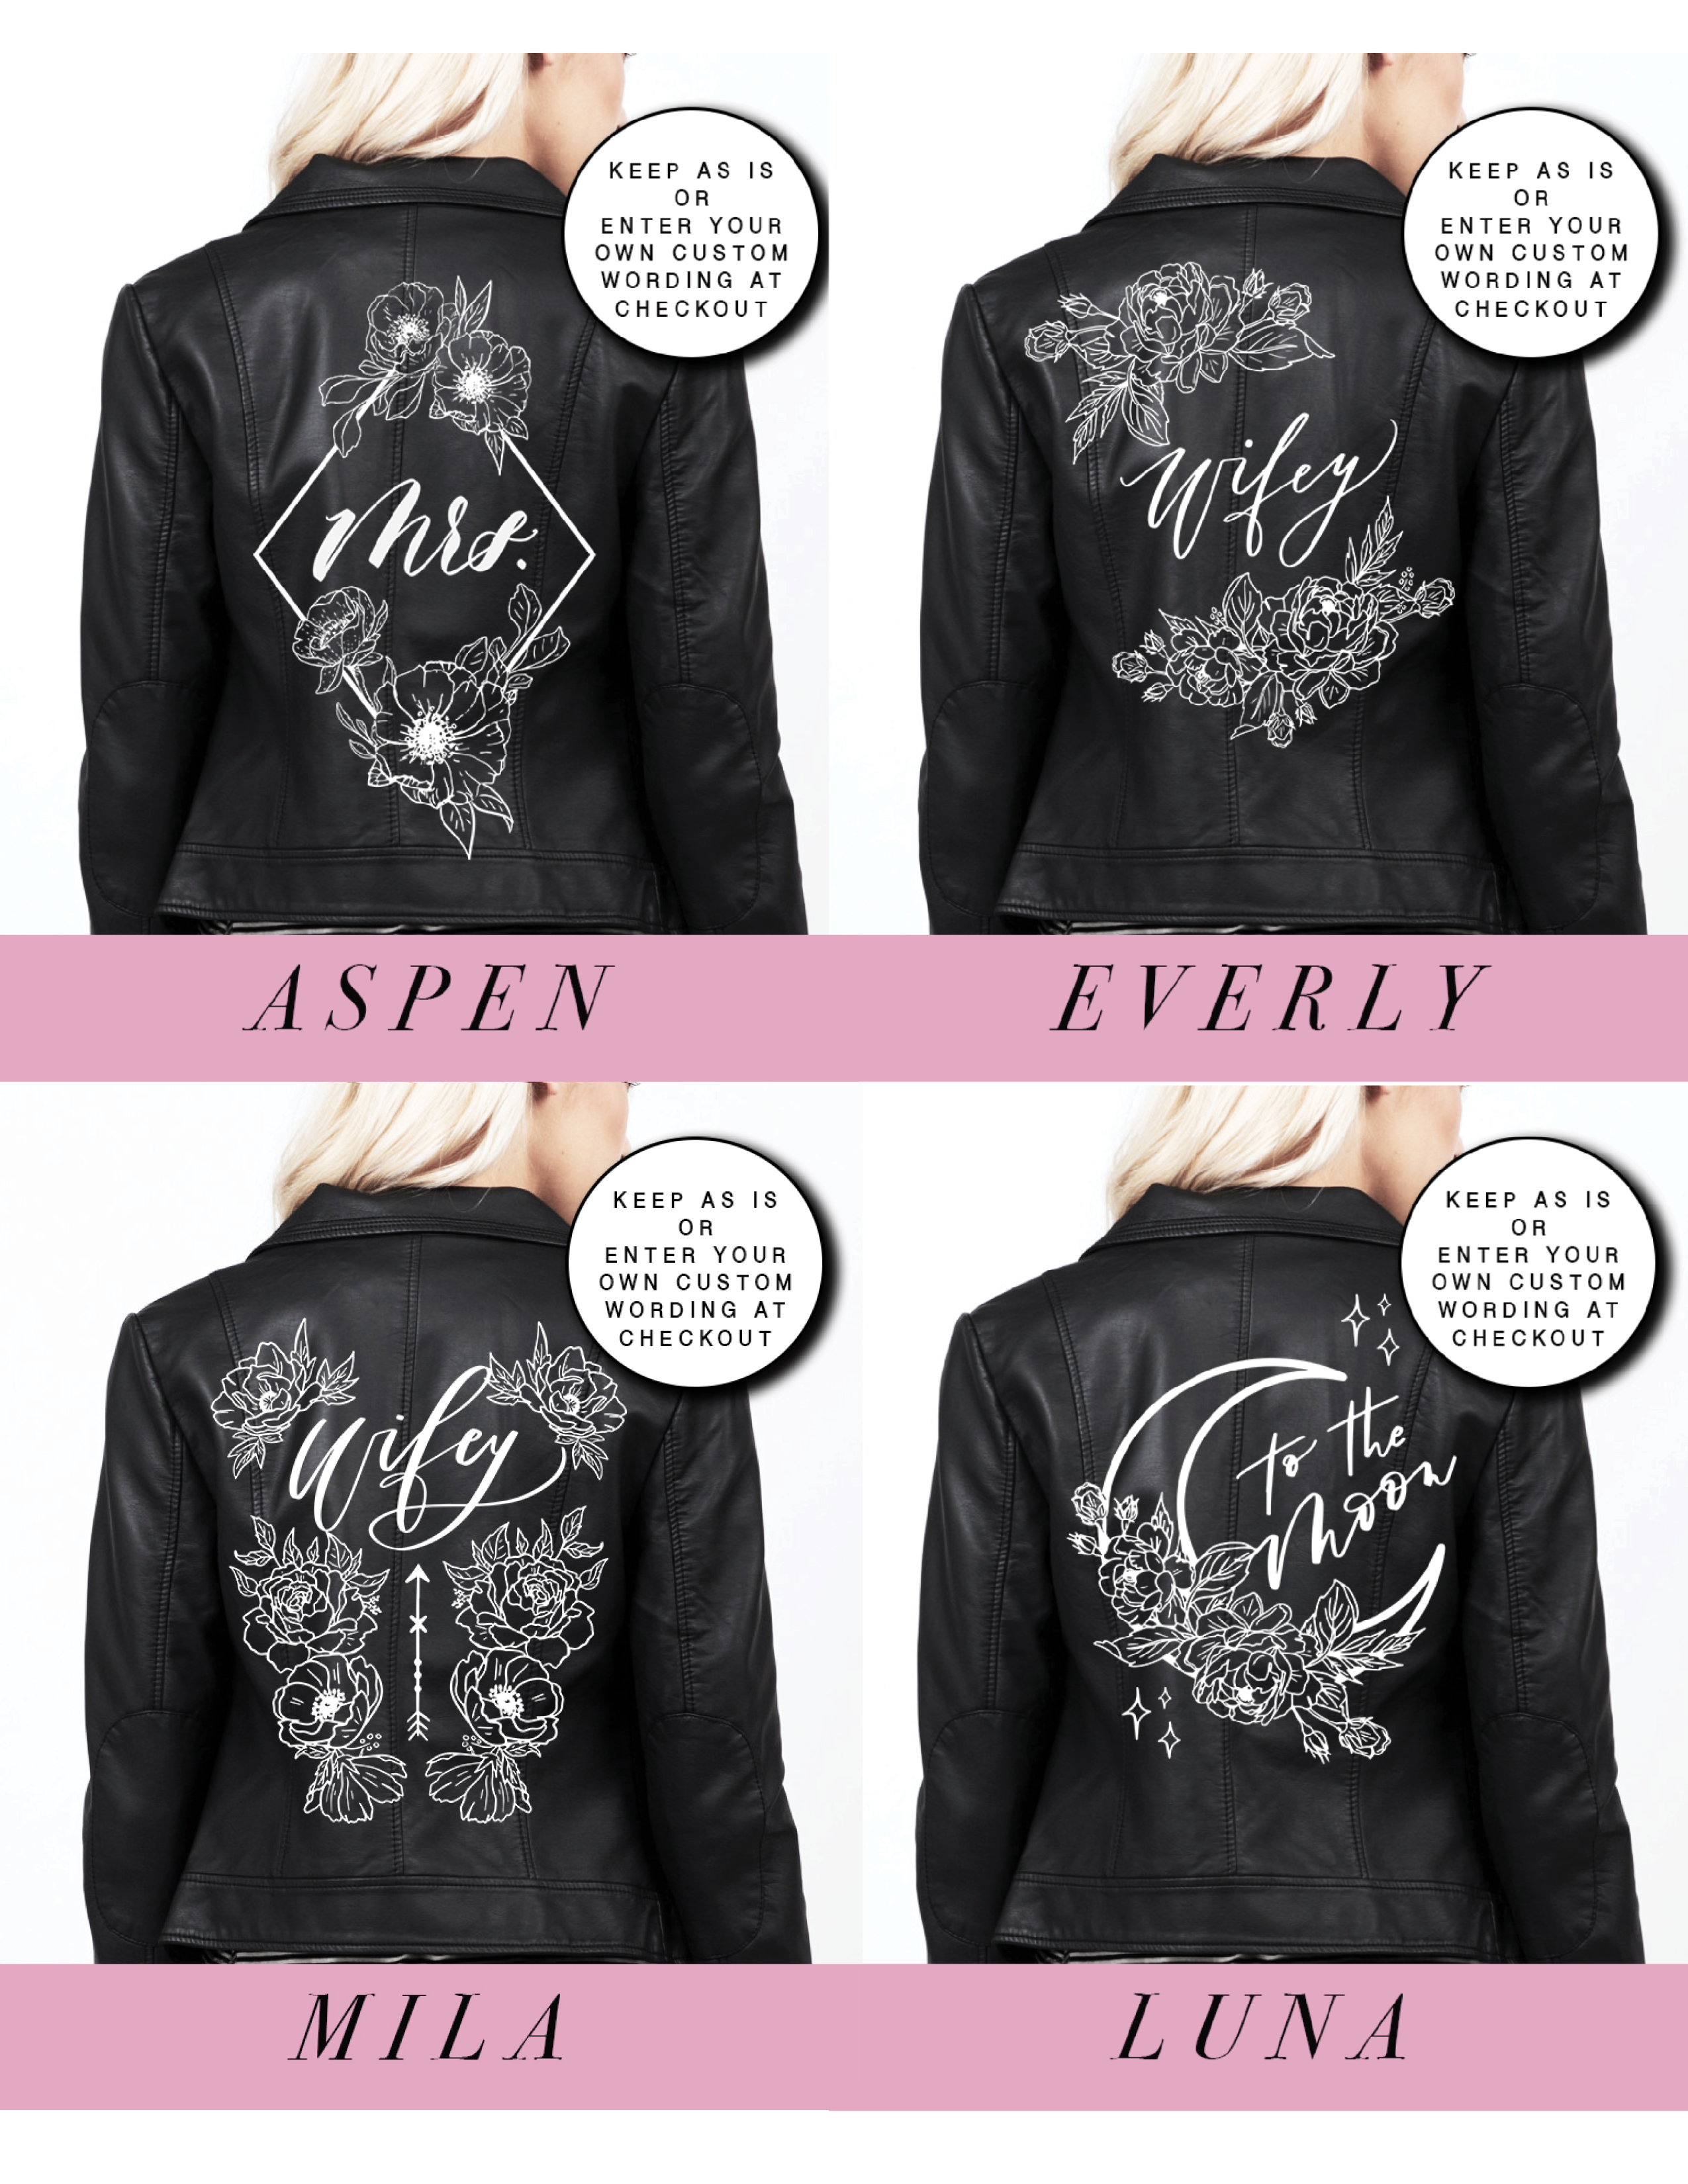 diy leather jacket kit, the bash box, bash creative design, how to diy painted leather jacket, 2019 wedding trends